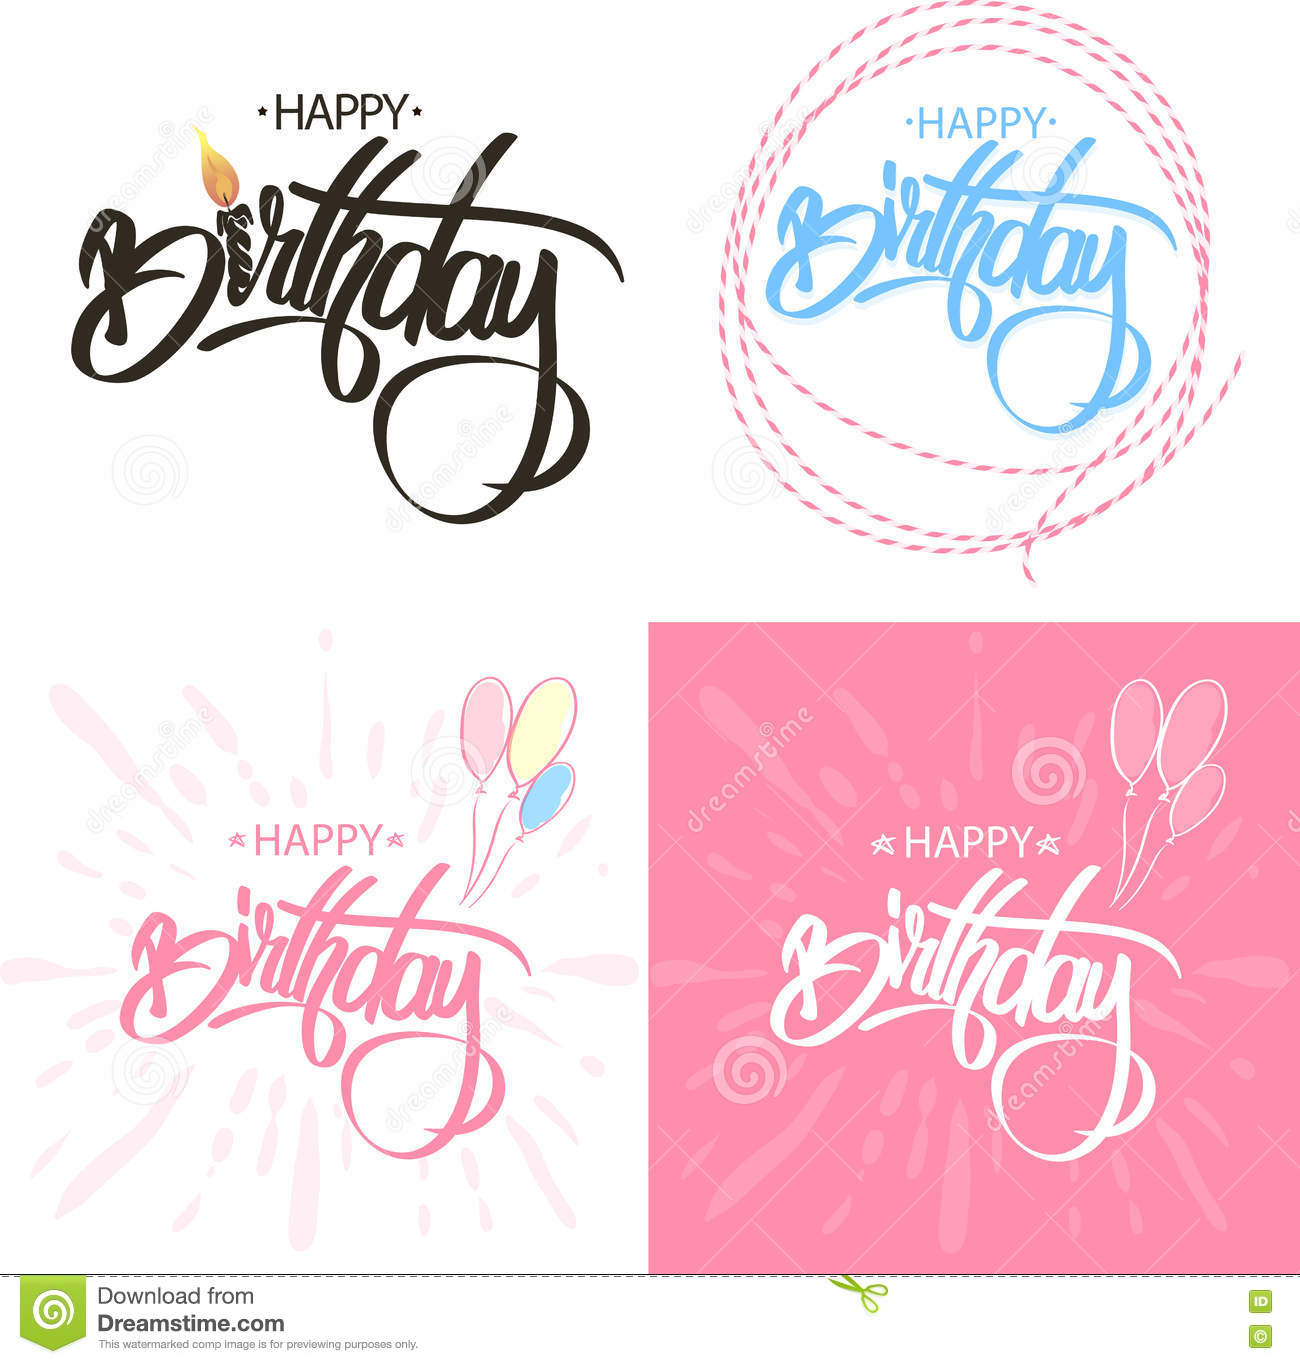 Happy Birthday Brush Script Style Hand lettering. Calligraphic Phrase Sat